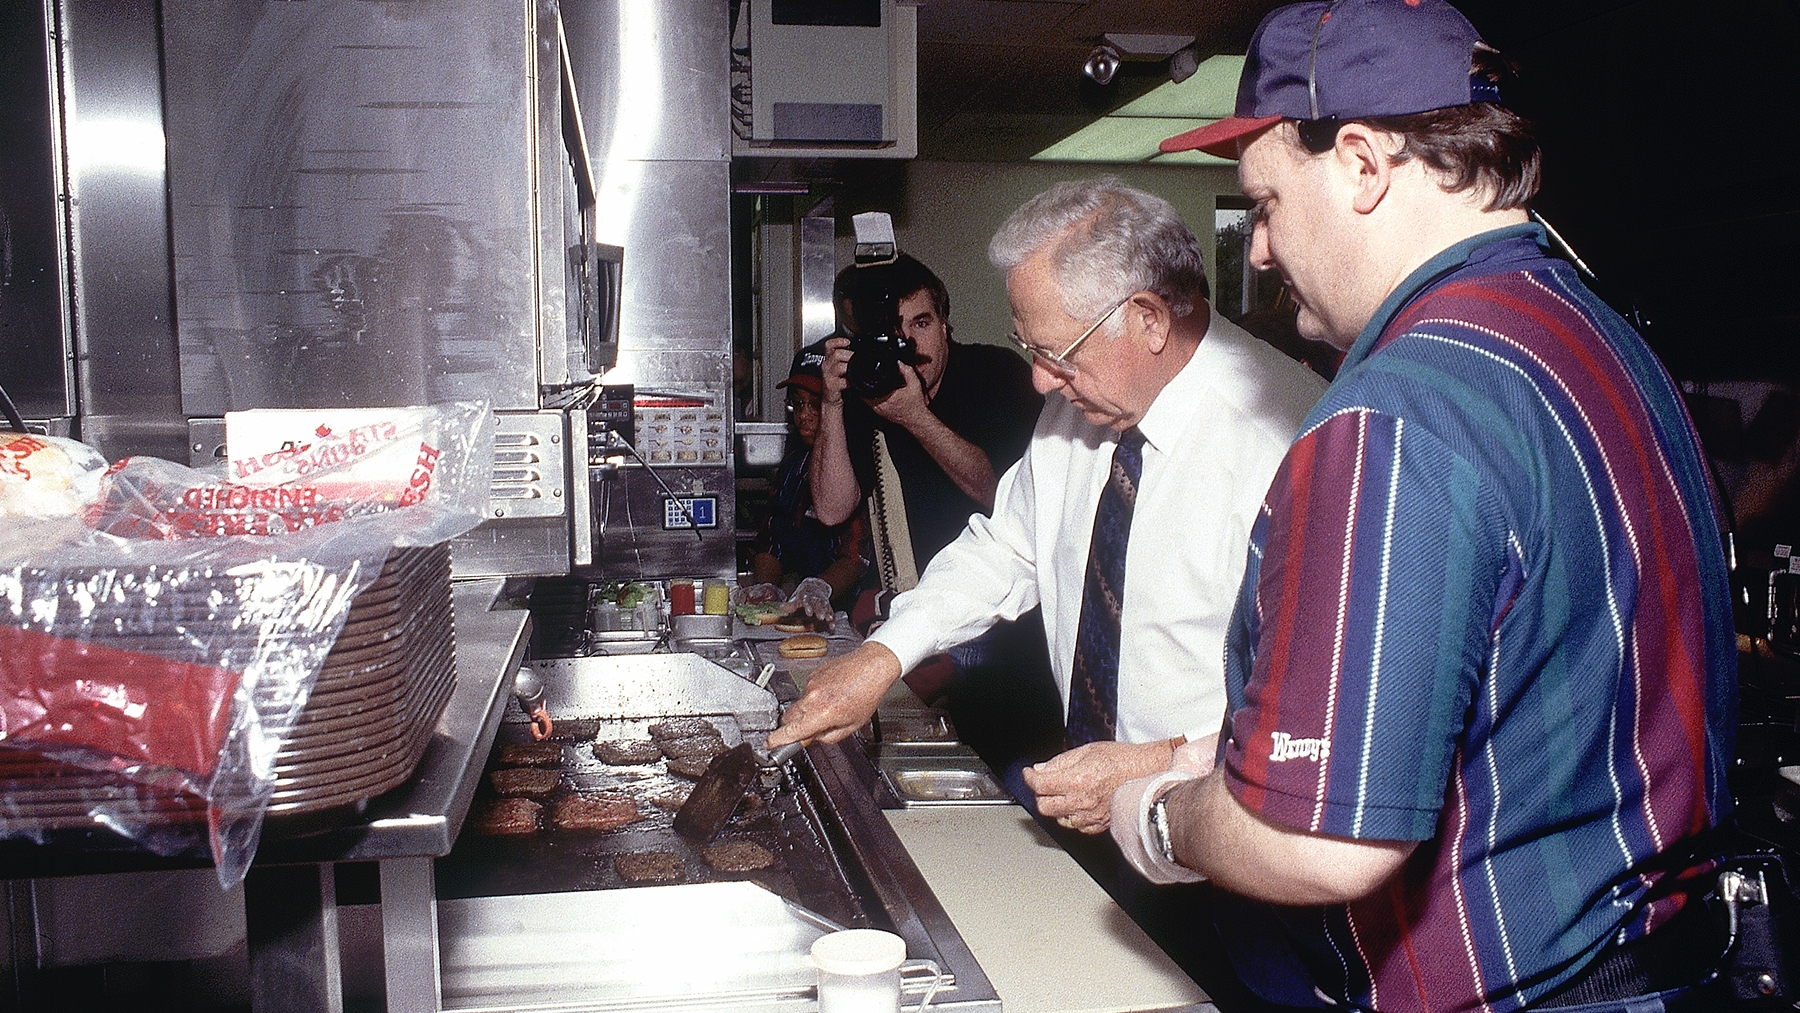 Dave serving up burgers in the Wendy's kitchen